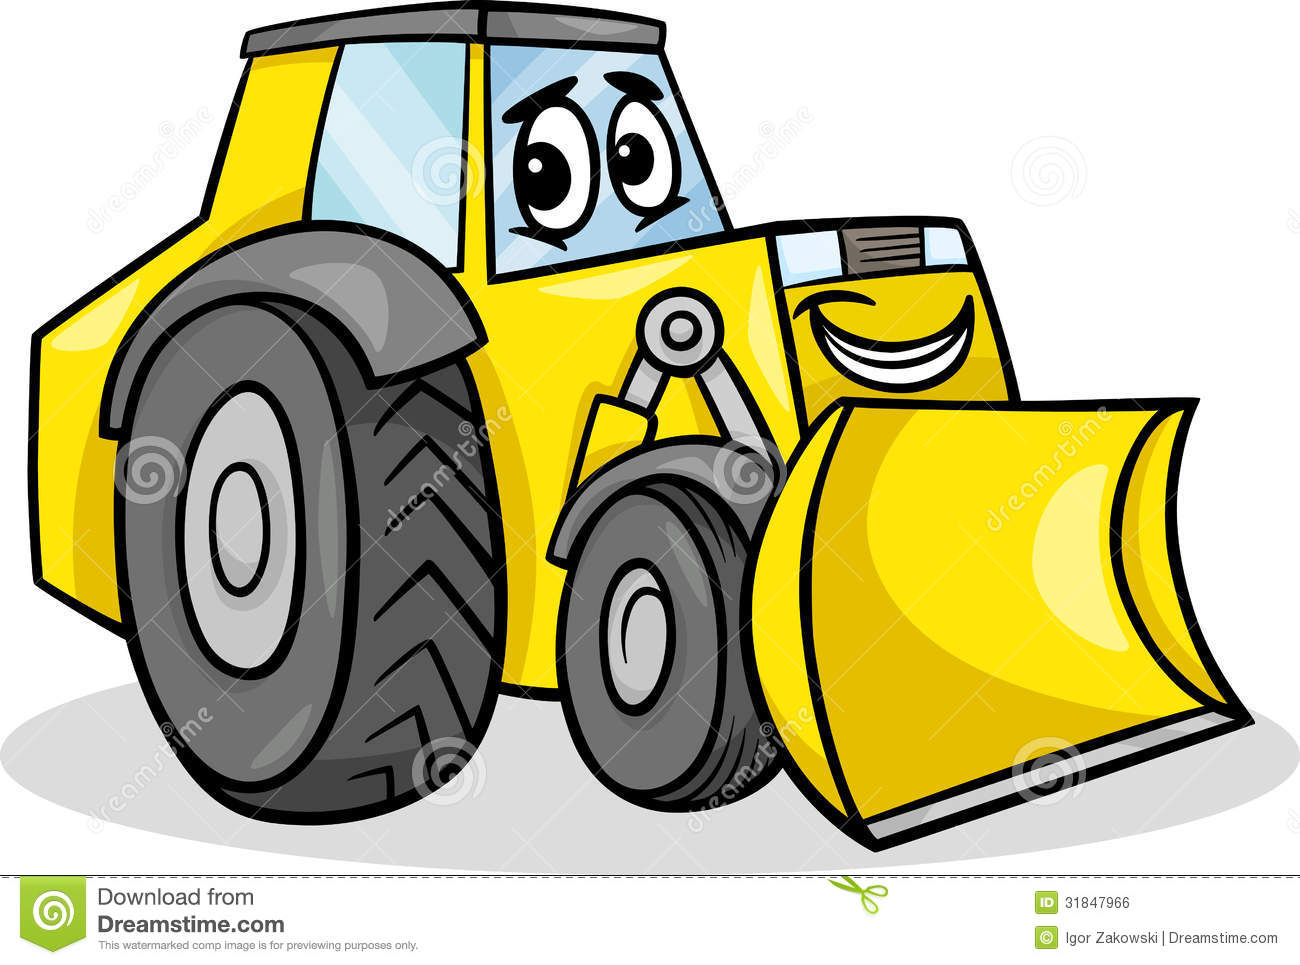 bulldozer character cartoon illustration funny machine comic mascot 31847966 further backhoe coloring page 1 on backhoe coloring page likewise backhoe coloring page 2 on backhoe coloring page additionally backhoe coloring page 3 on backhoe coloring page moreover cartoon bulldozer coloring page on backhoe coloring page